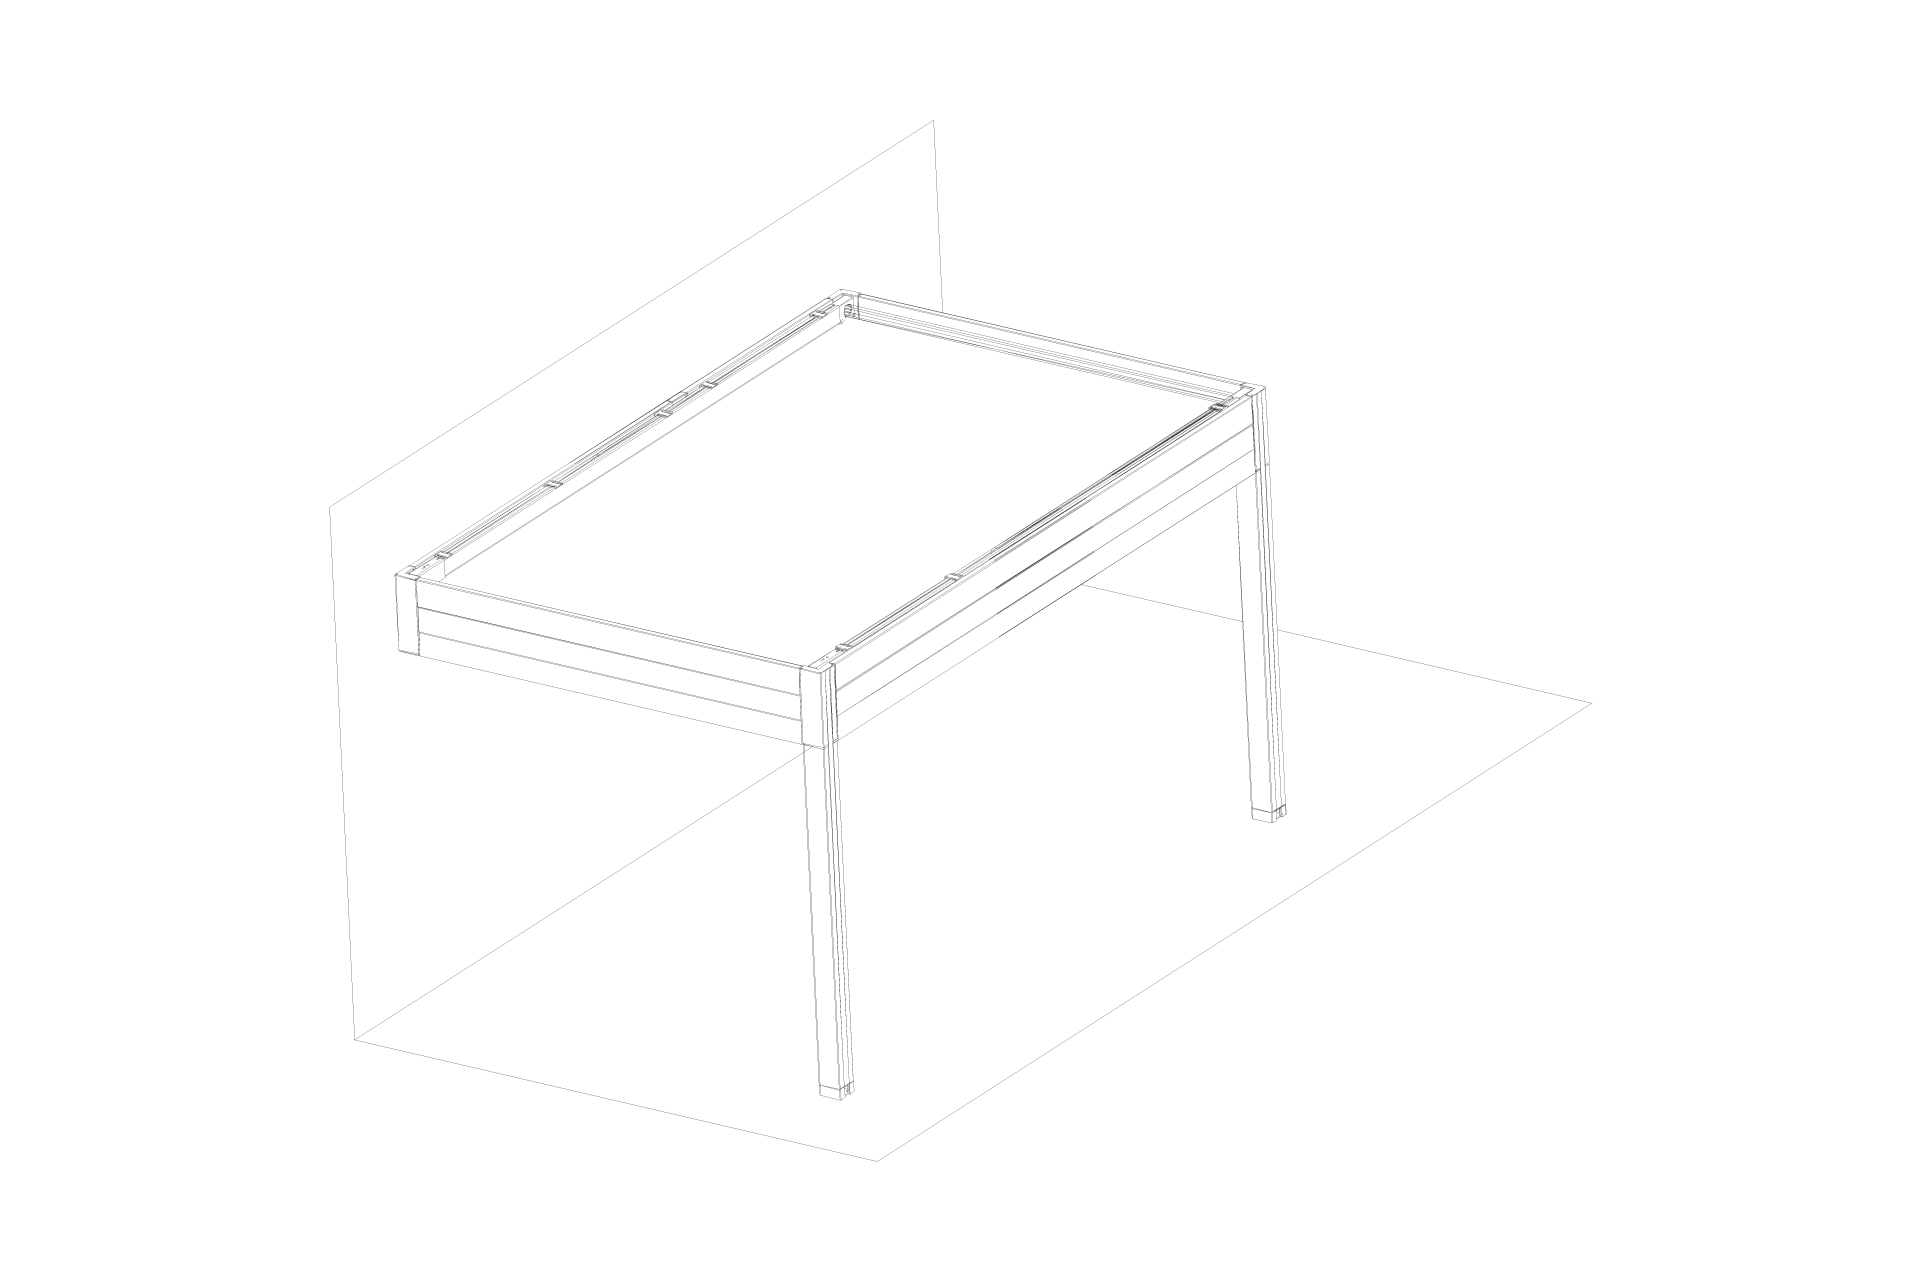 Placed single form with protruding side